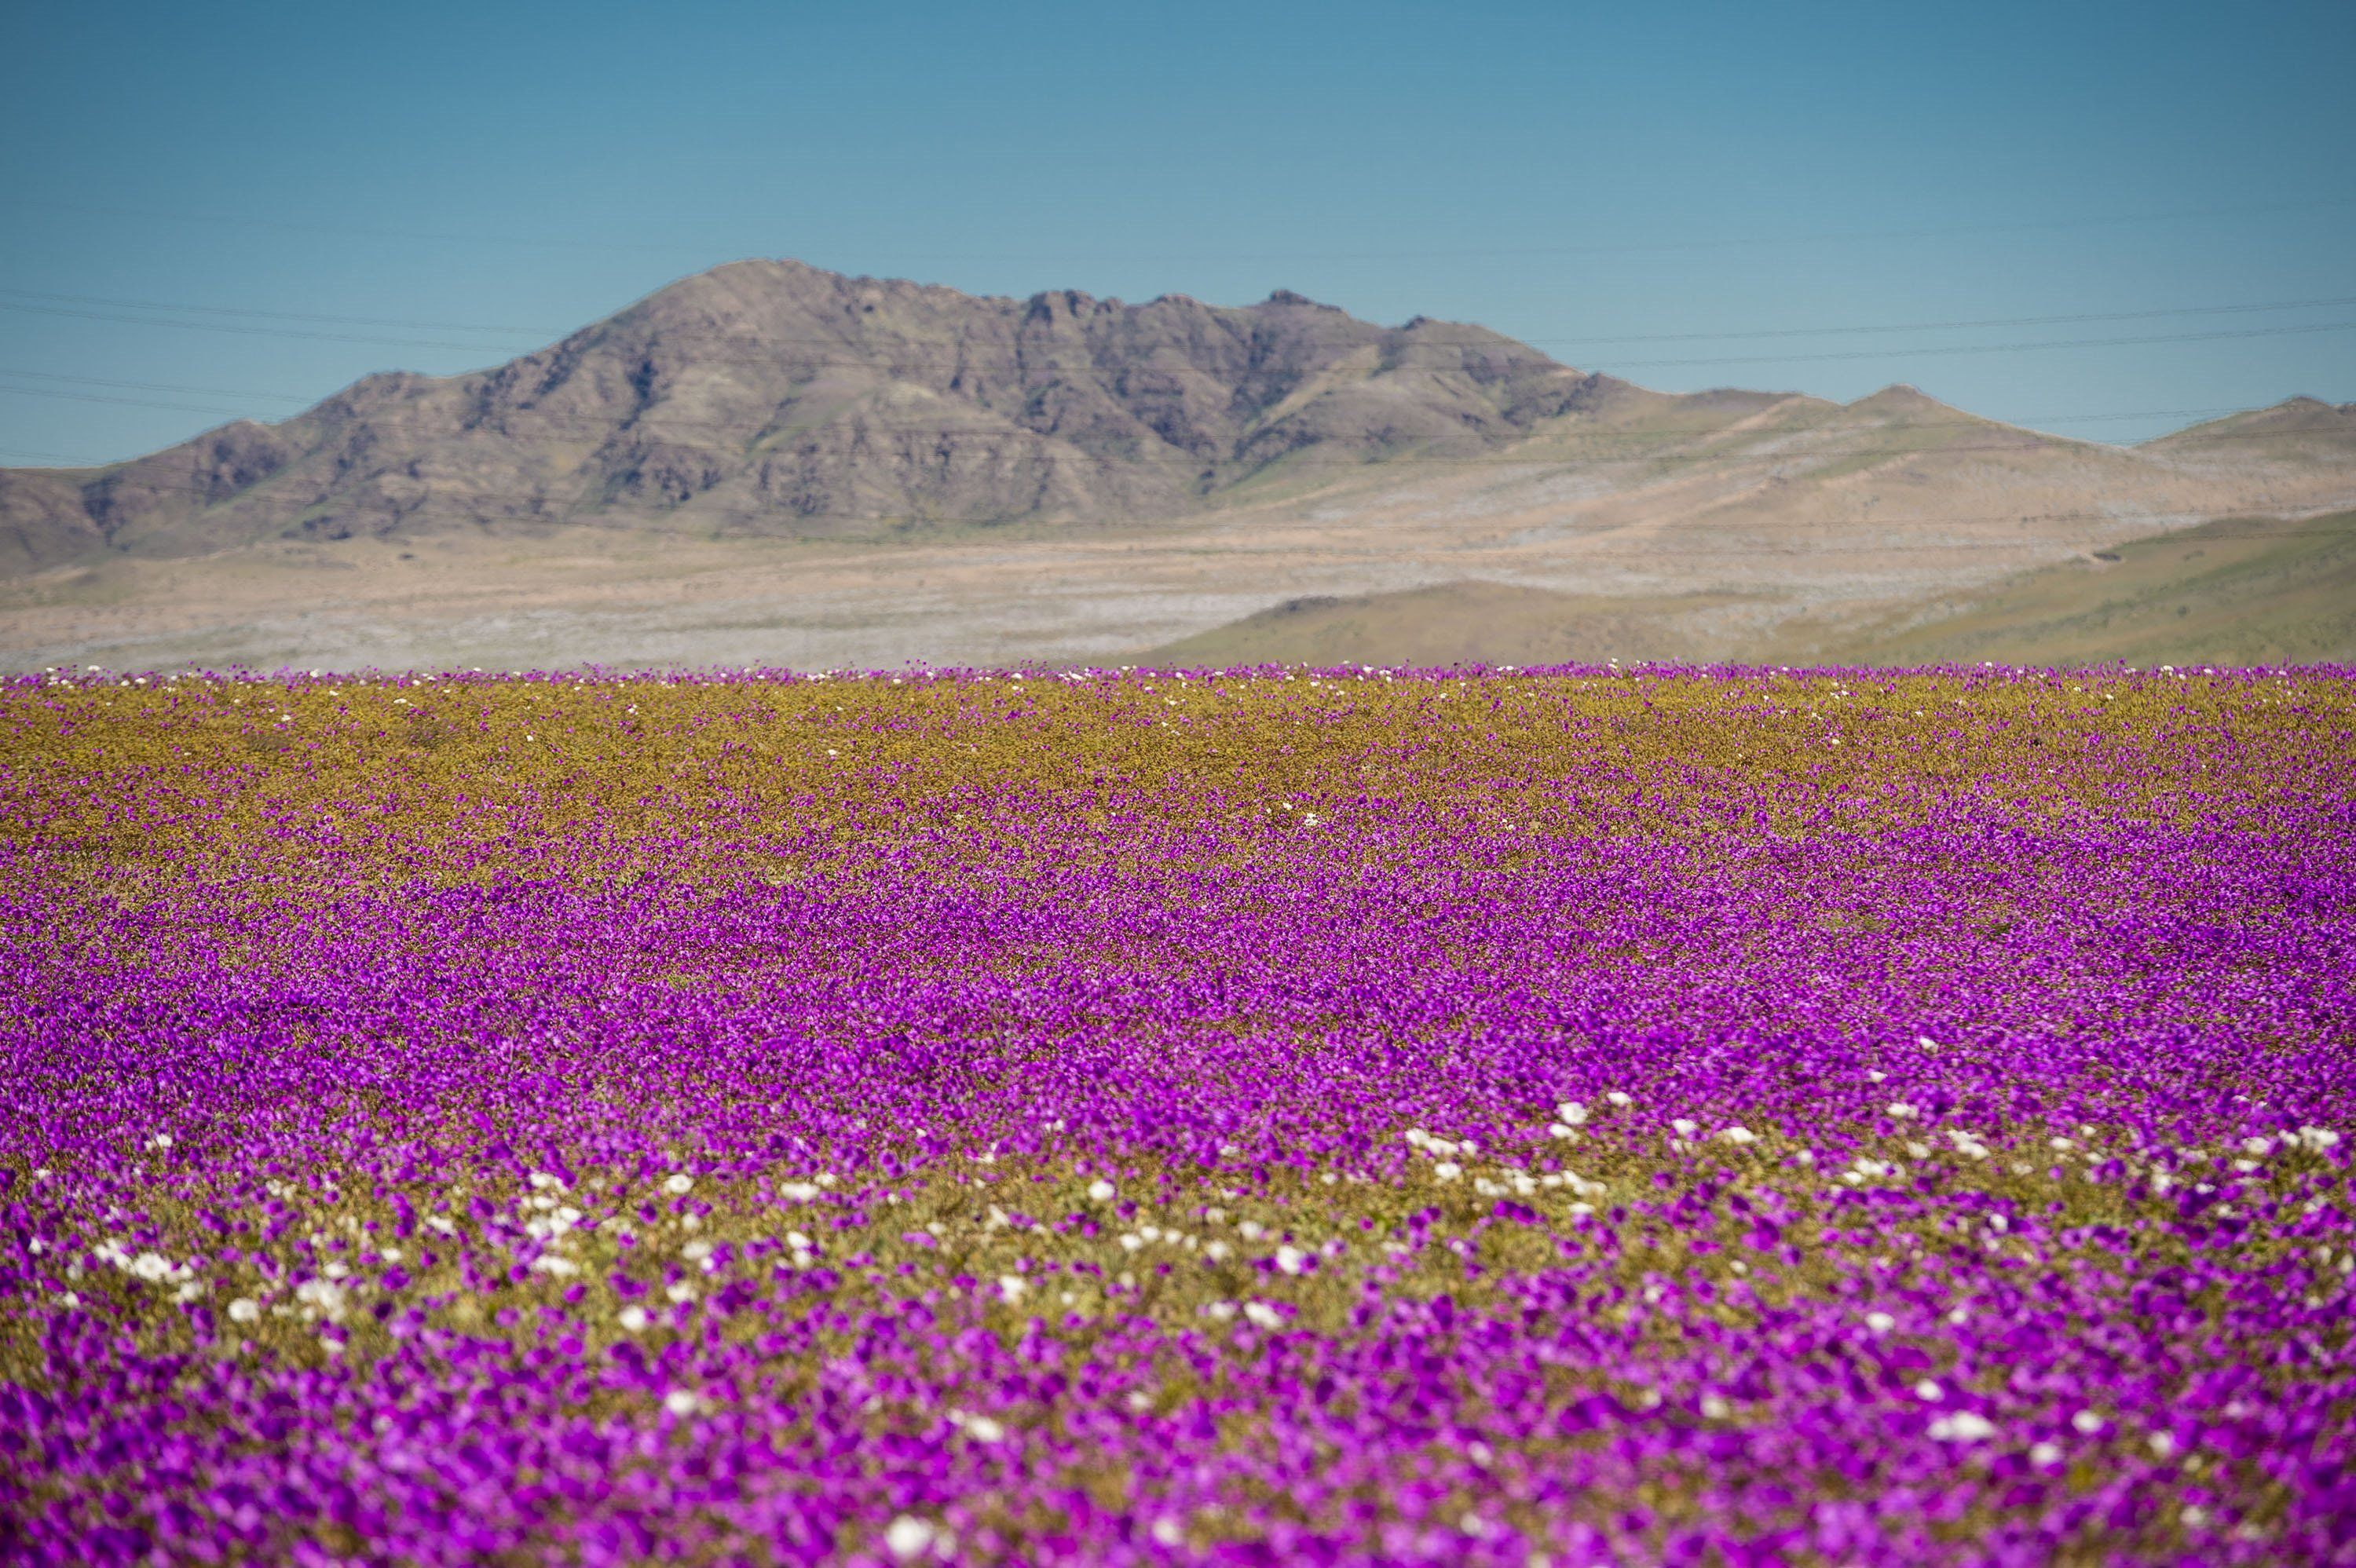 The World s Driest Desert Blooms With Hundreds Of Flowers After Rare     The World s Driest Desert Blooms With Hundreds Of Flowers After Rare Rain    HuffPost